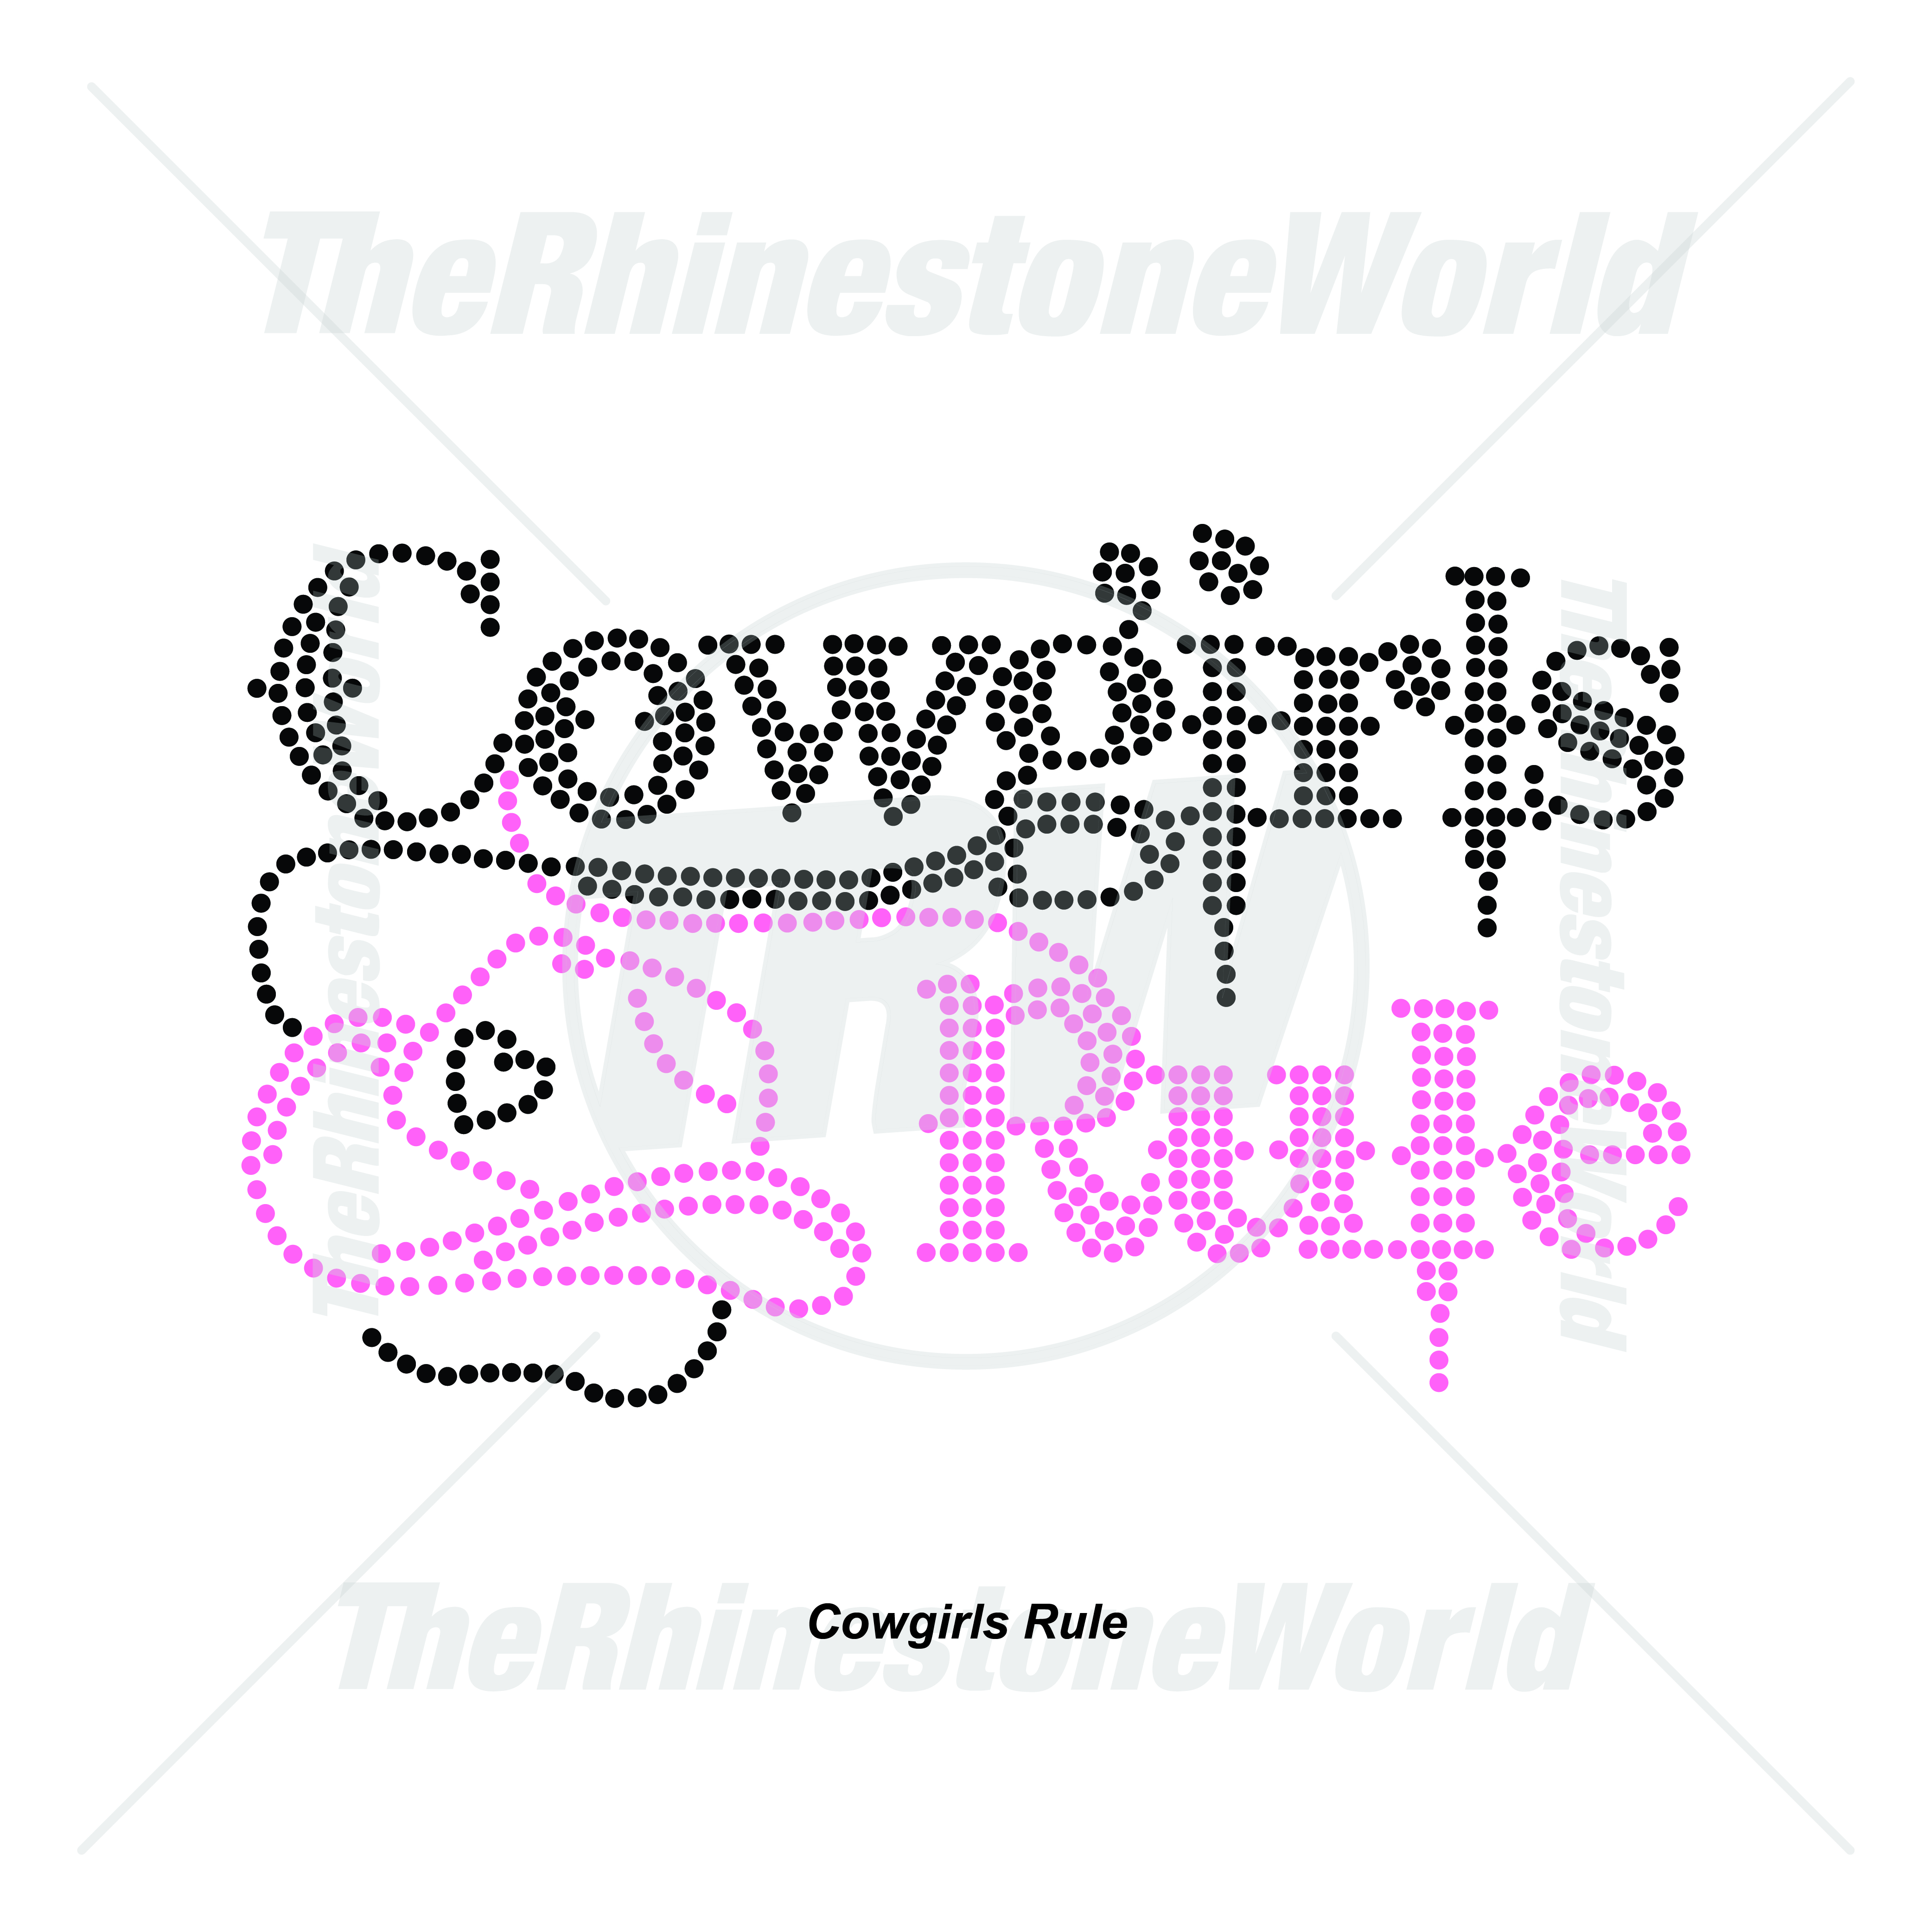 Western Cowgirls Rule - Download